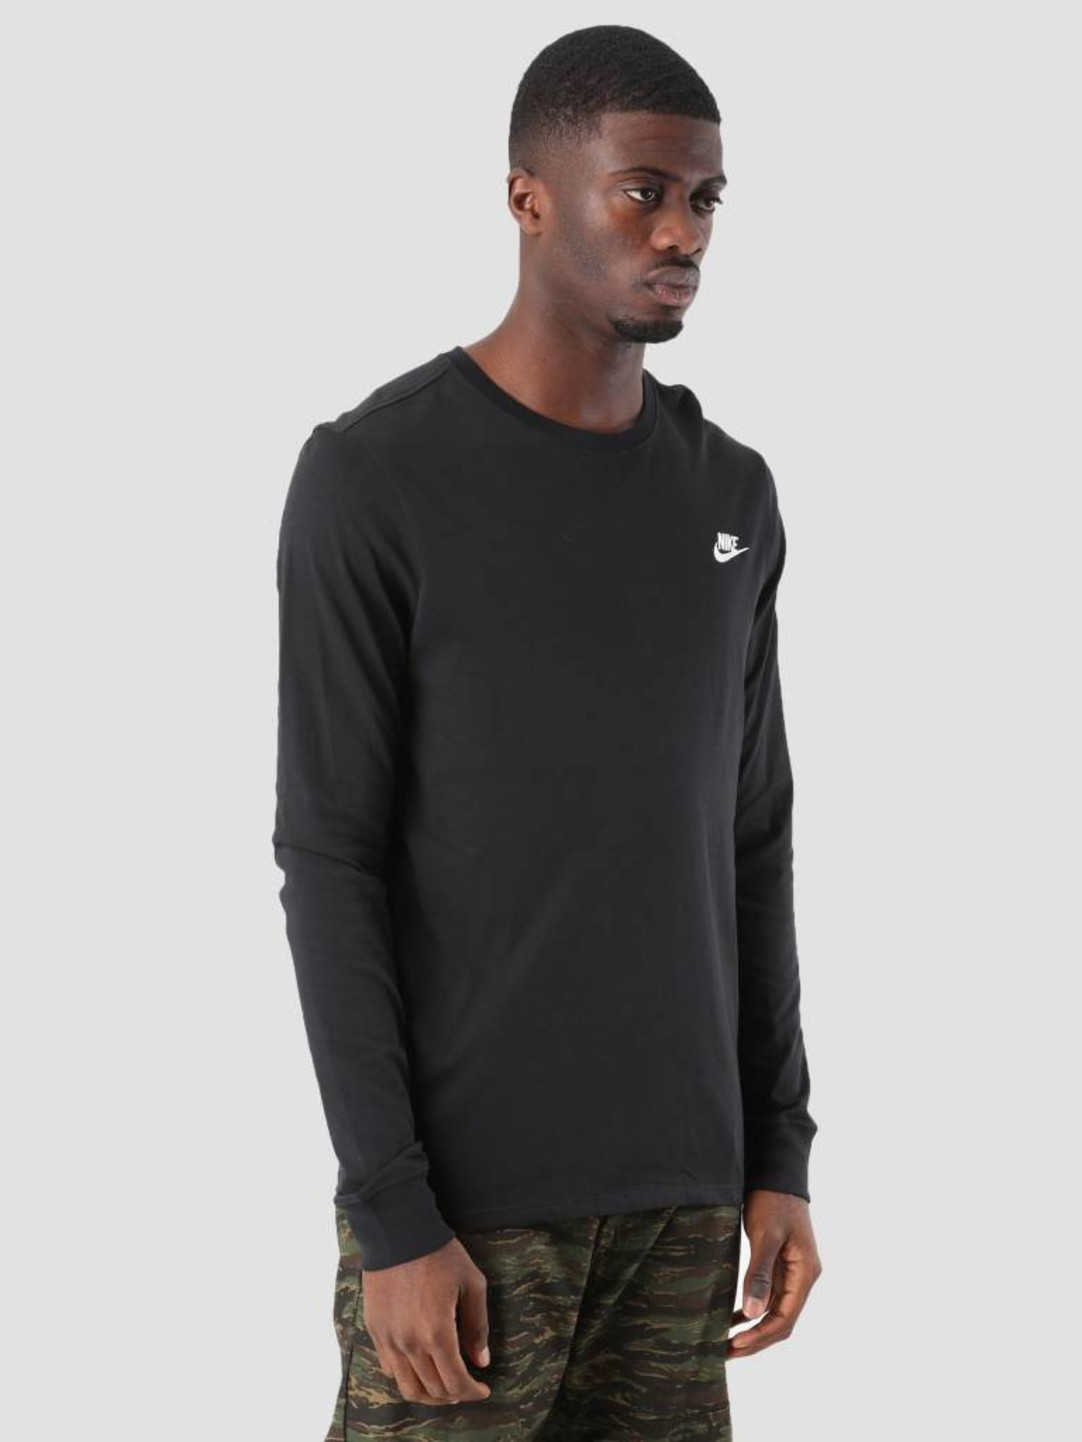 Nike Nike NSW Sweater Black White Aq7141-010